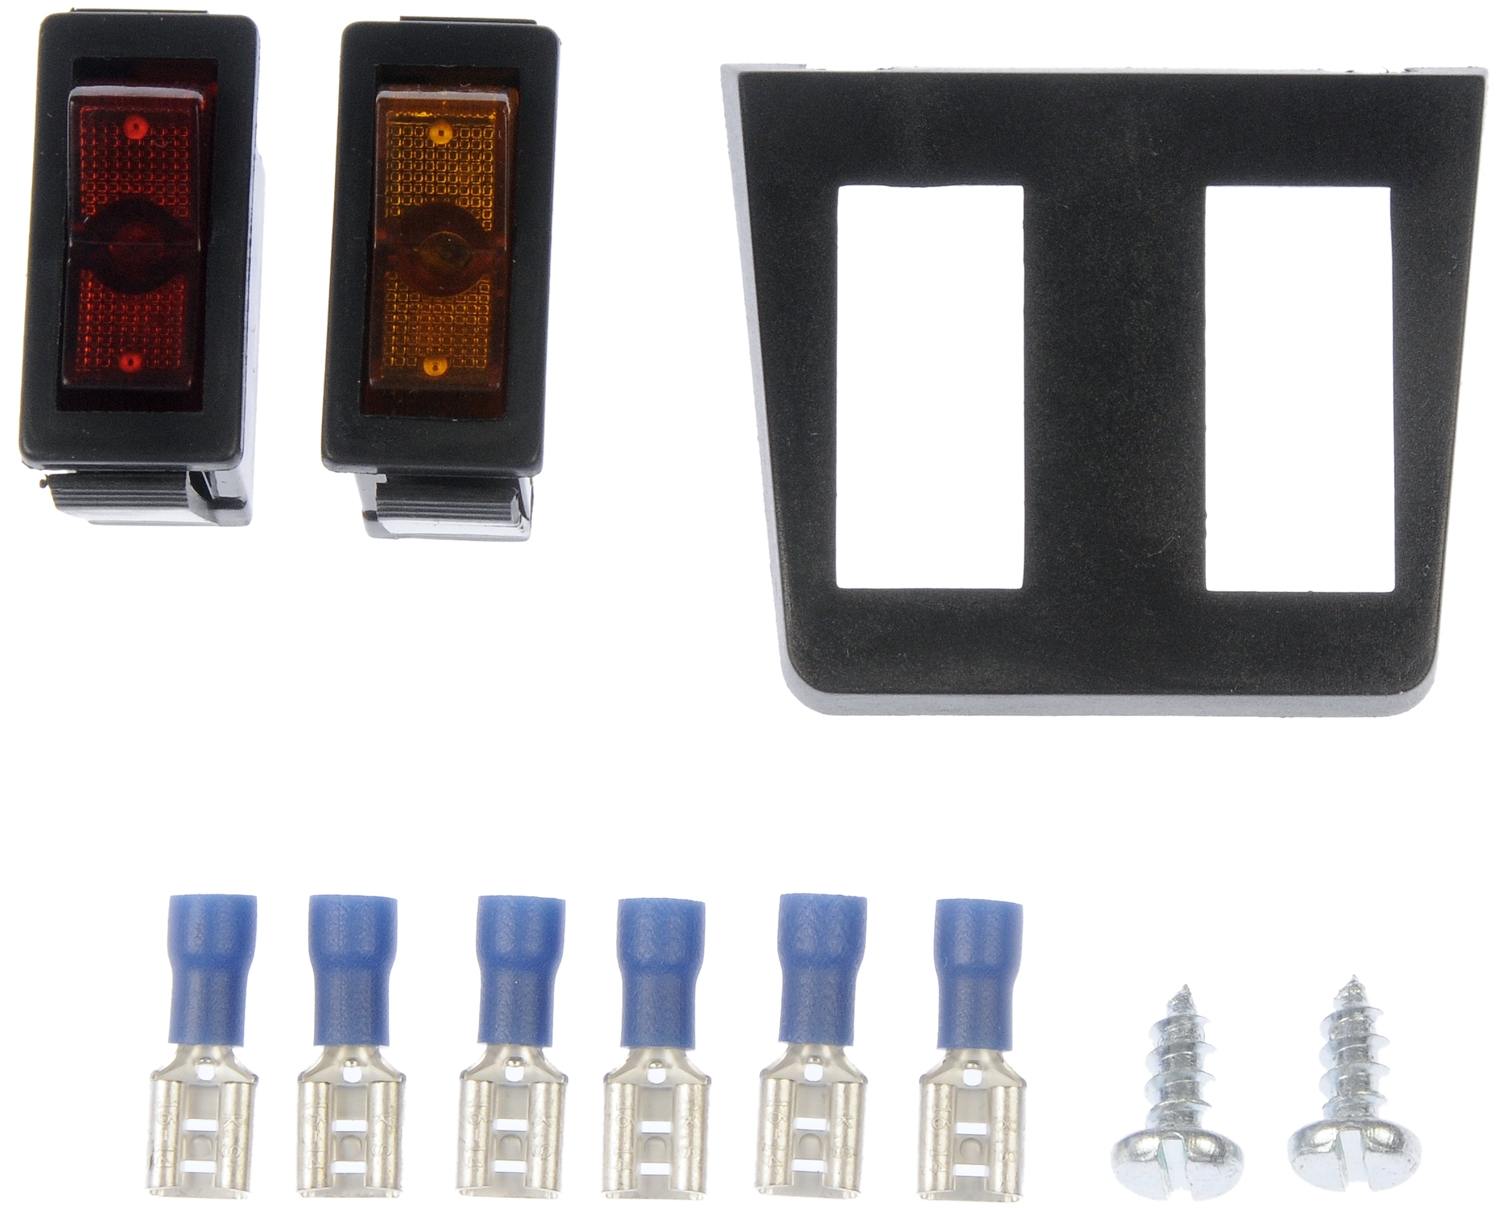 medium resolution of dorman oe solutions 86921 multi purpose switch conduct tite r 12 volt 20 amp max rocker rectangular non lighted red amber without safety cover